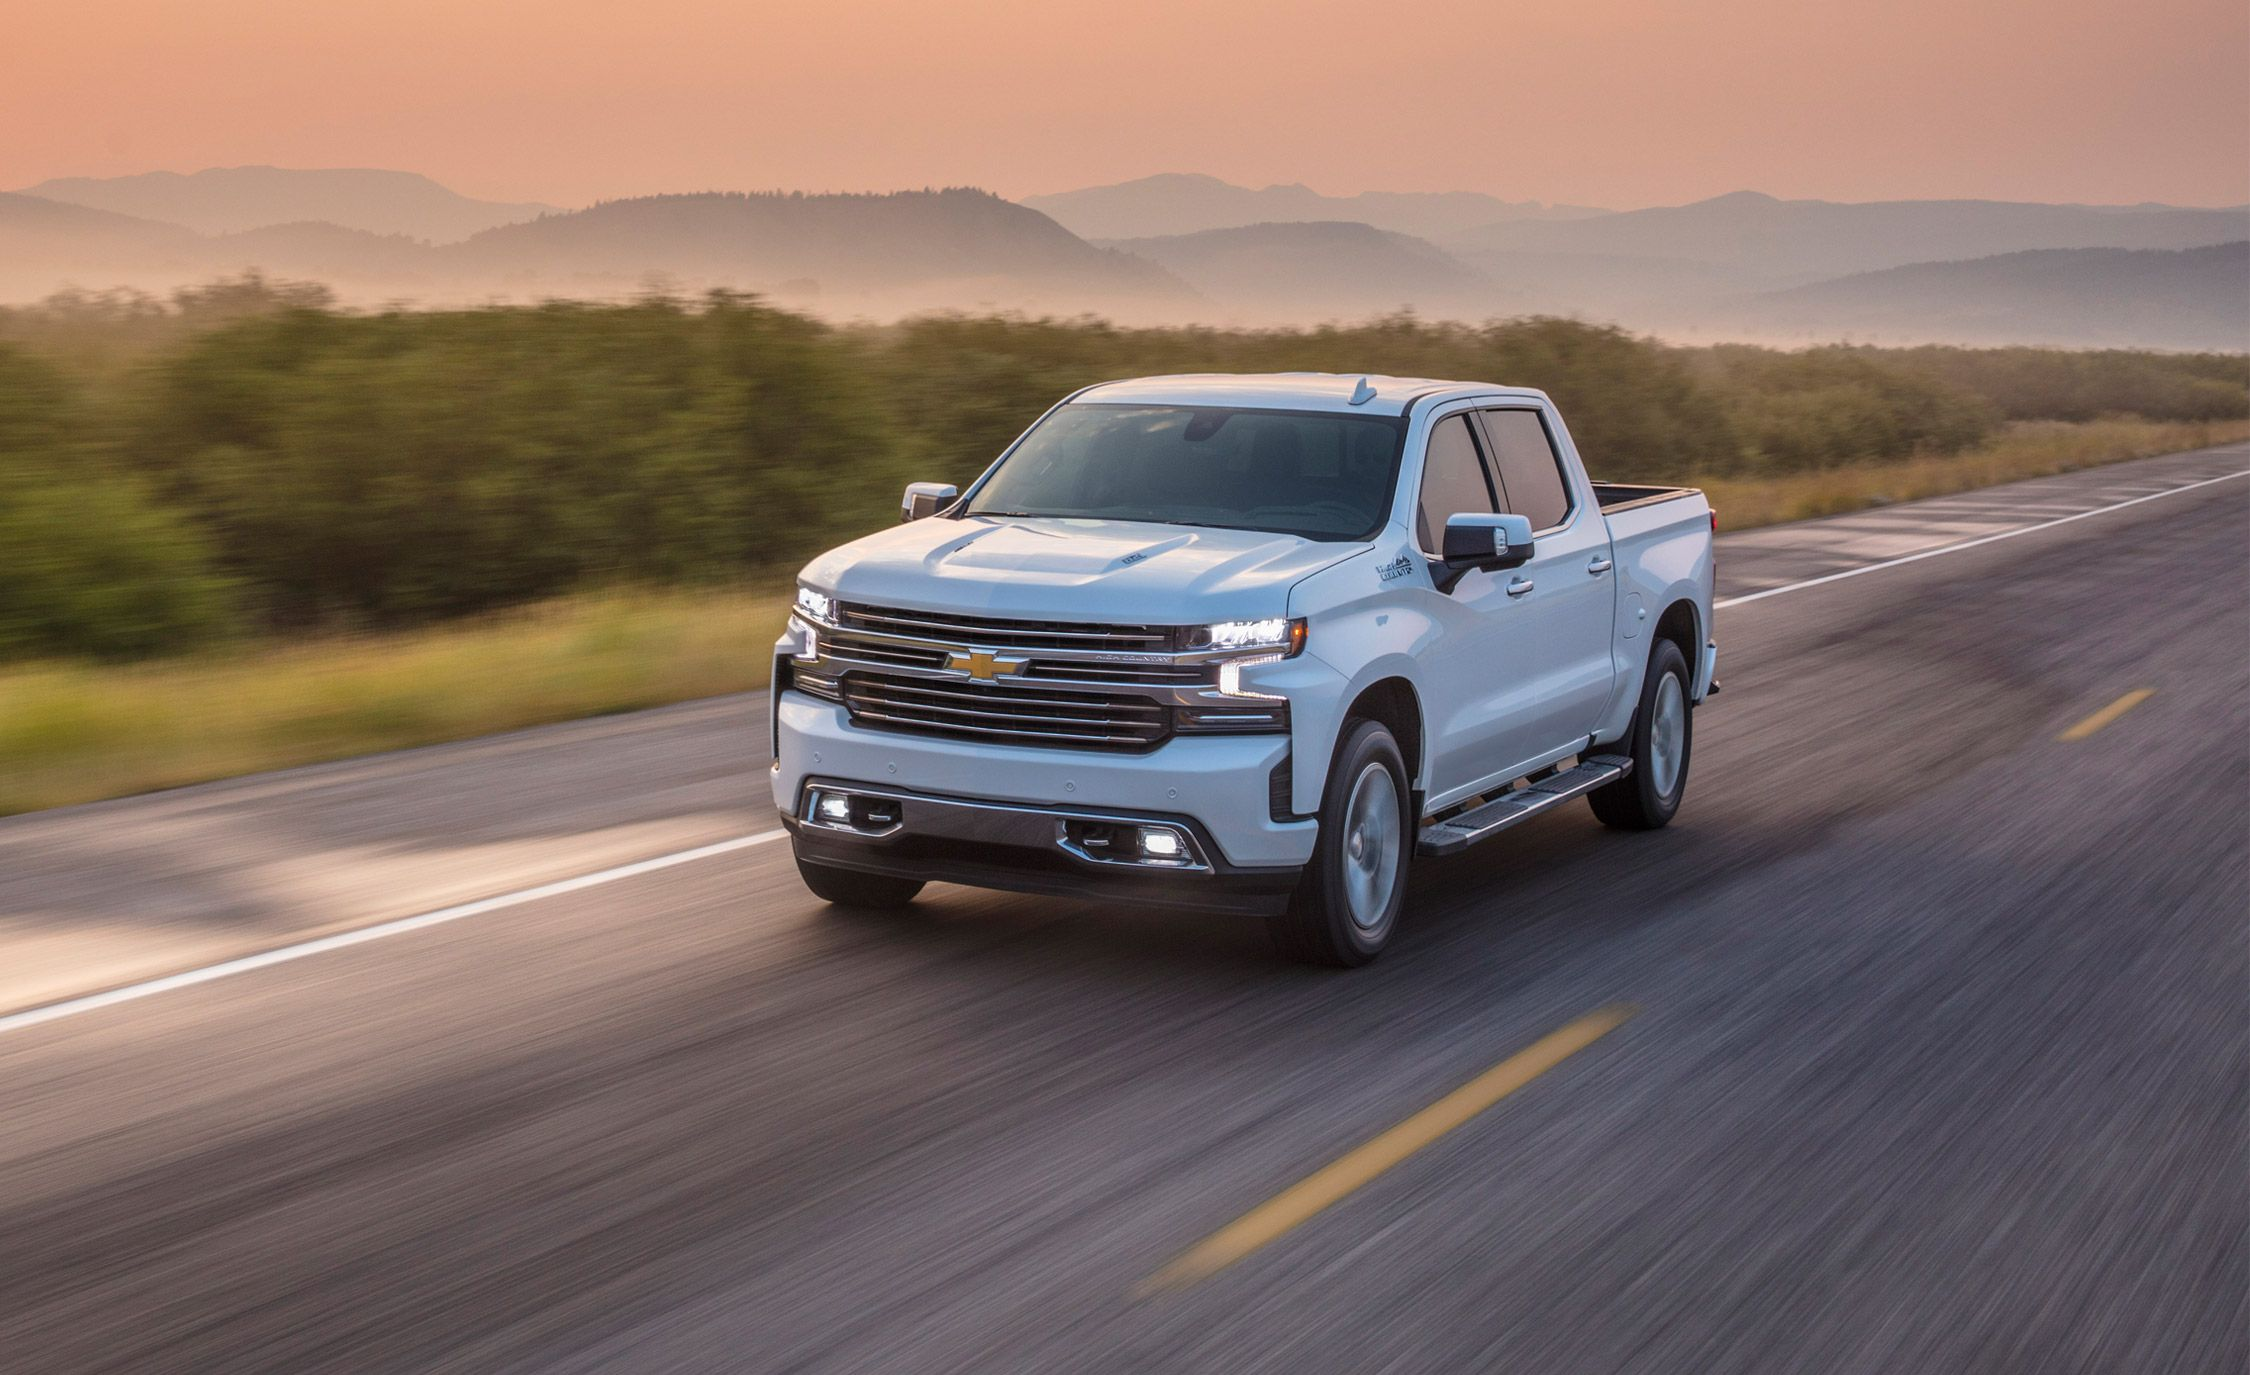 2019 Chevrolet Silverado 1500 Driven Longer Lighter More Fuel Efficient And Extremely Refined